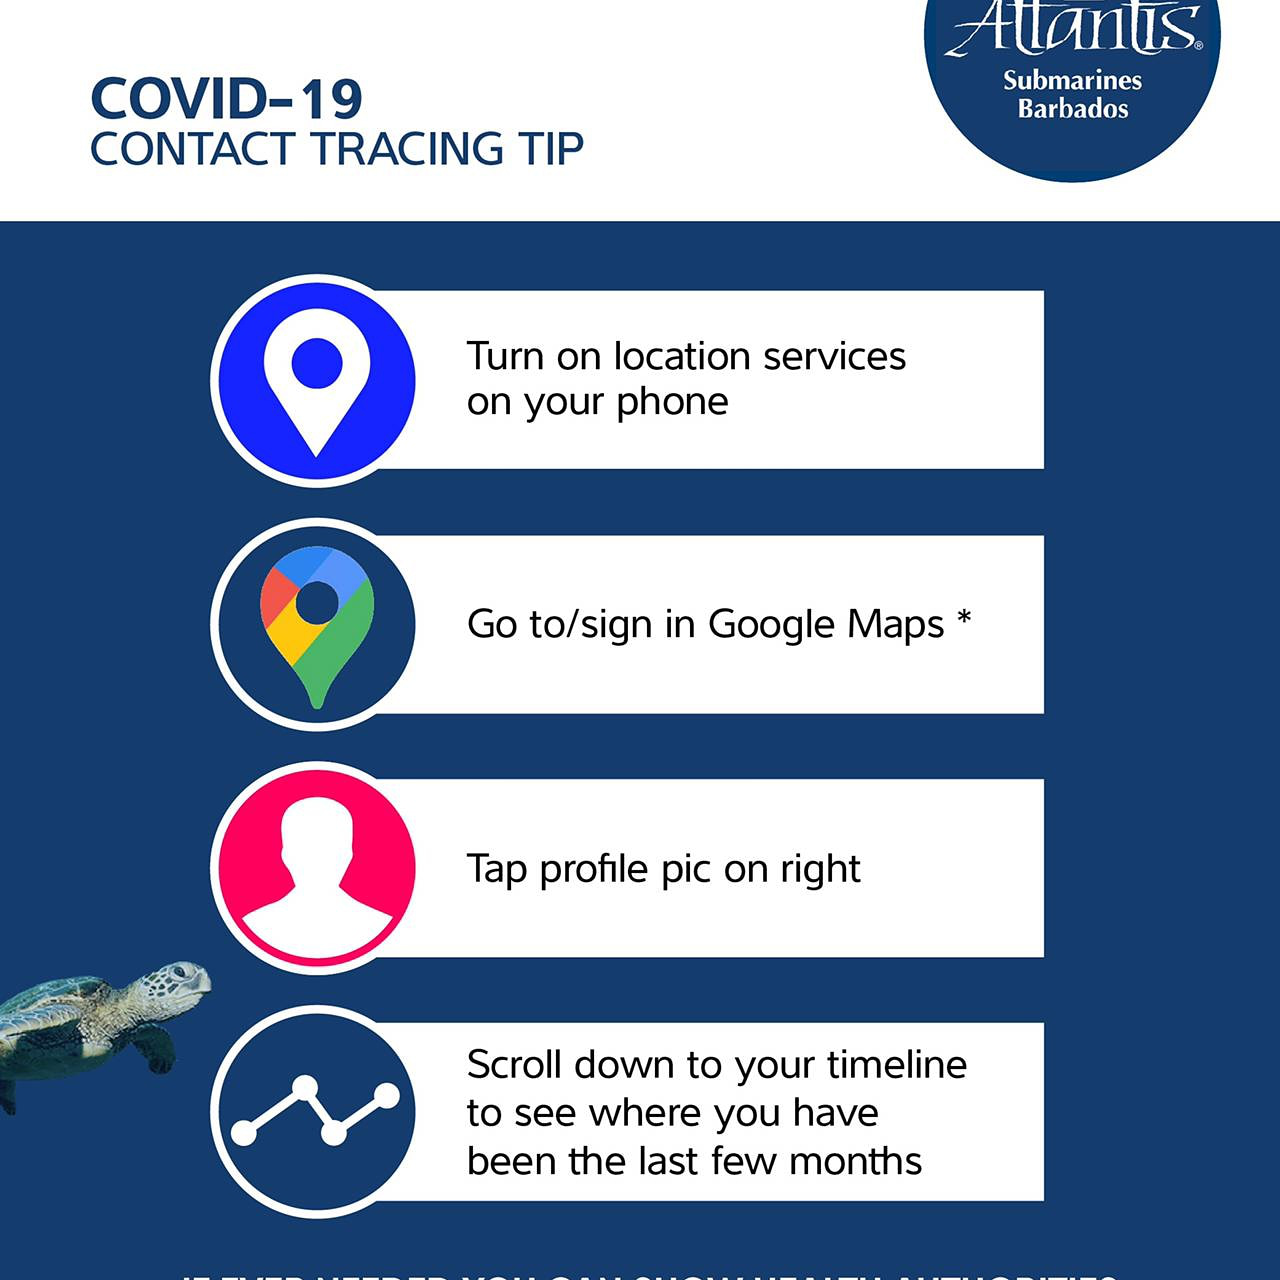 COVID-19 Contact Tracking Tip from Atlantis Submarine Barbados